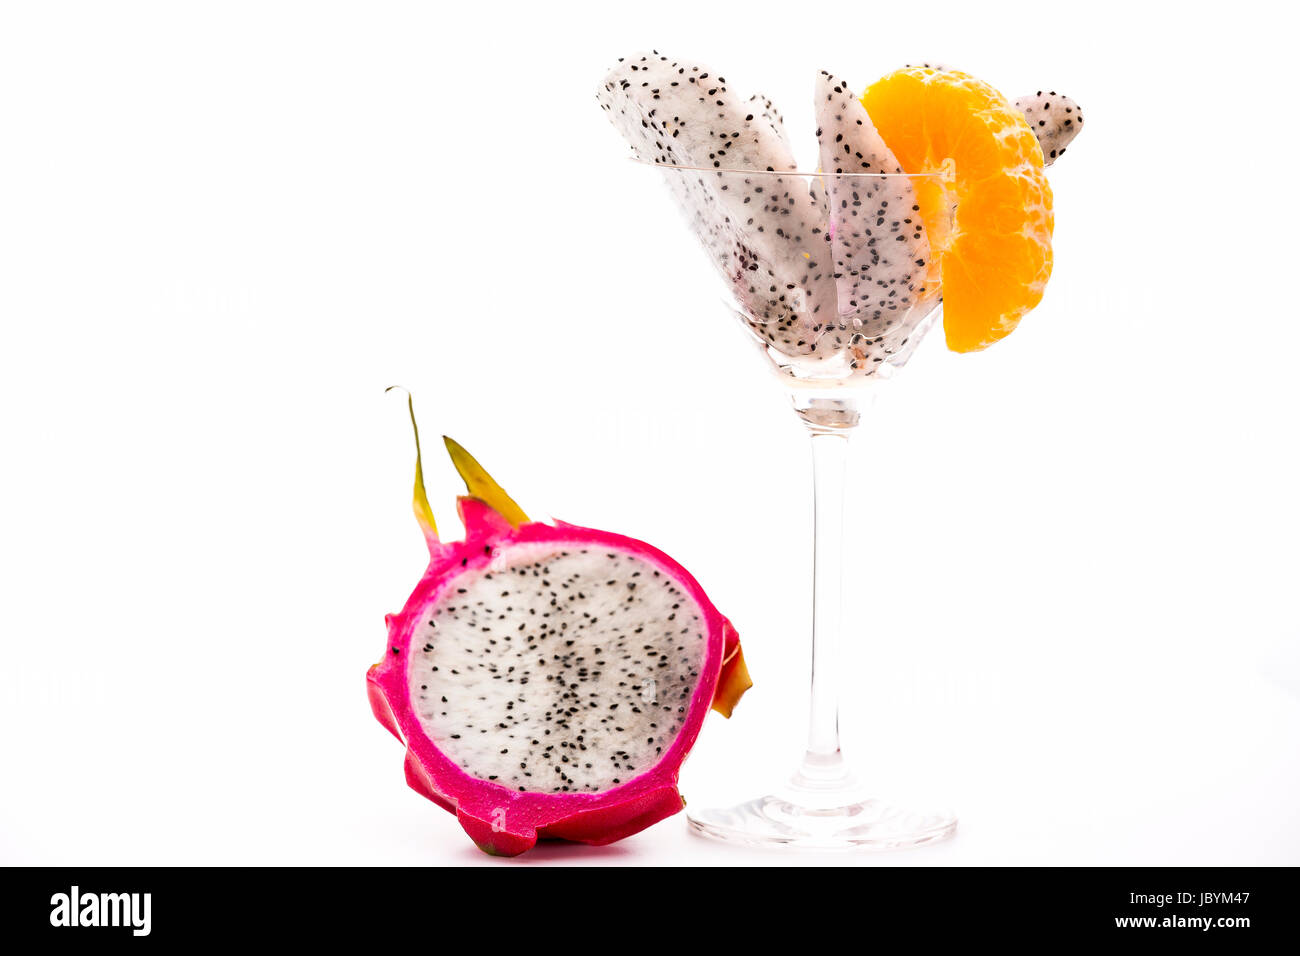 The white pulp of the pitaya presents itself splendidly clad in a vibrant purple skin. Its mild aroma is in harmony - Stock Image